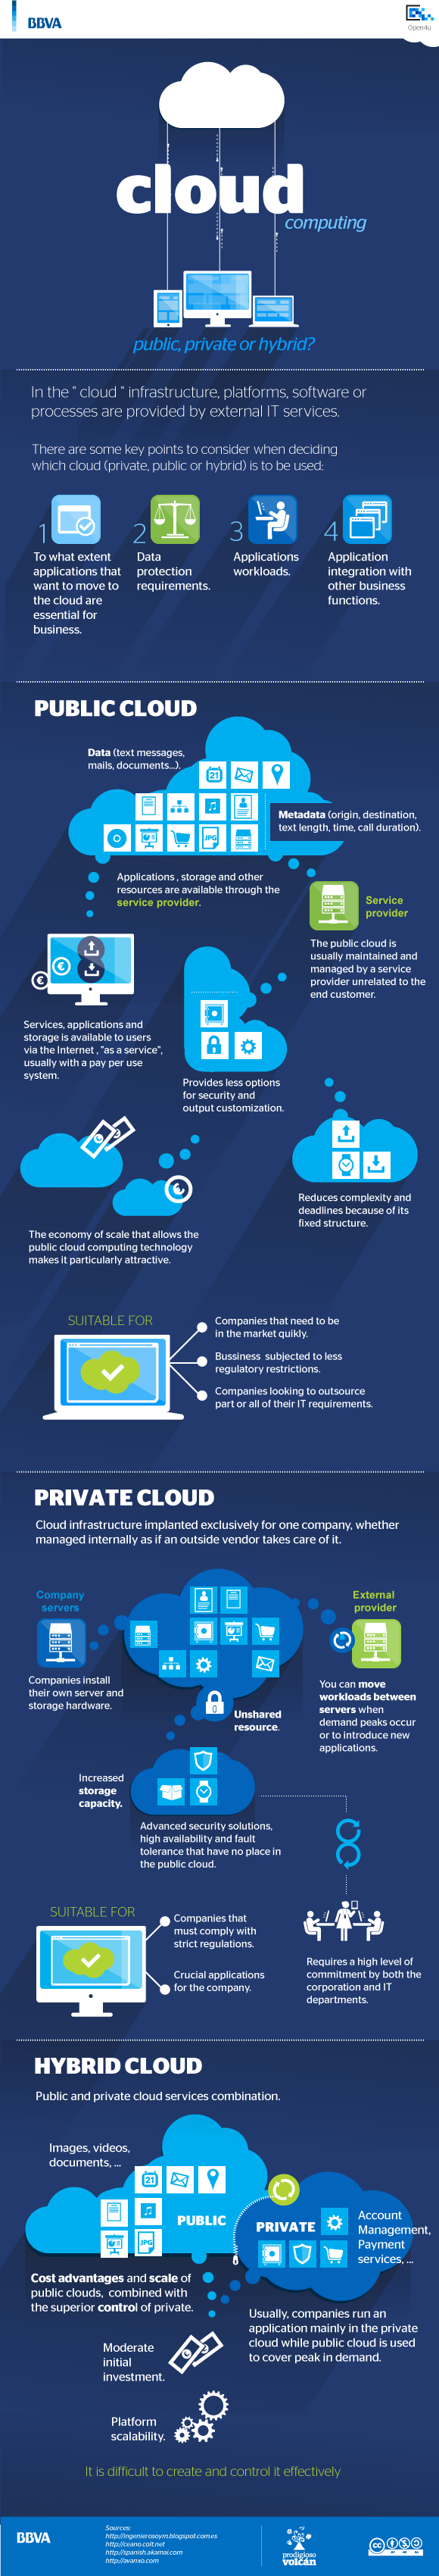 Cloud computing, public, private or hybrid [infographic]